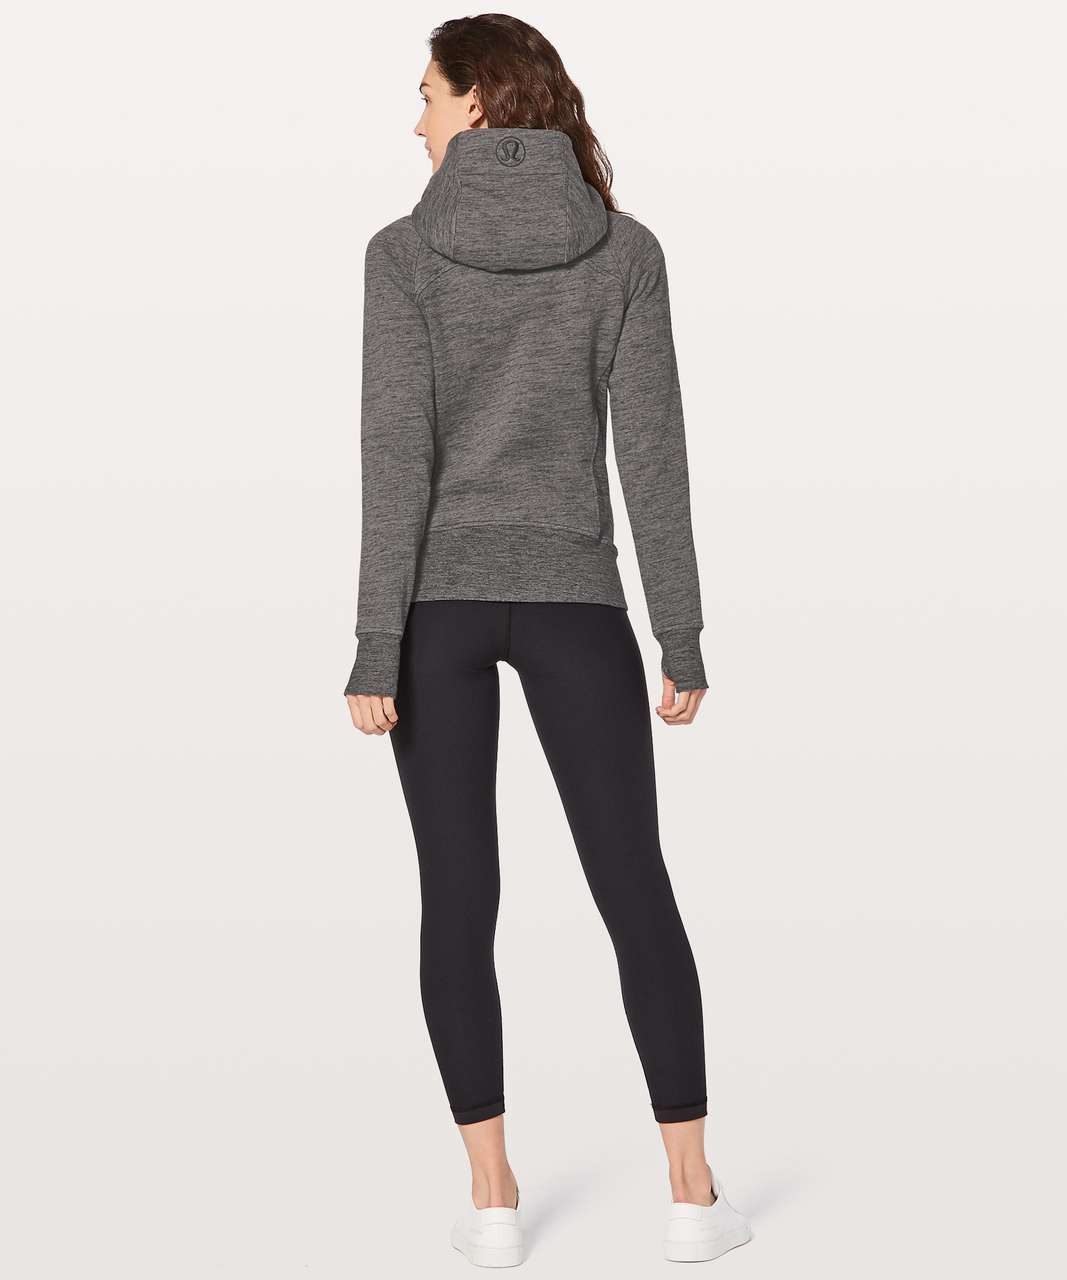 Lululemon Scuba Hoodie *Light Cotton Fleece - Heathered Core Dark Grey